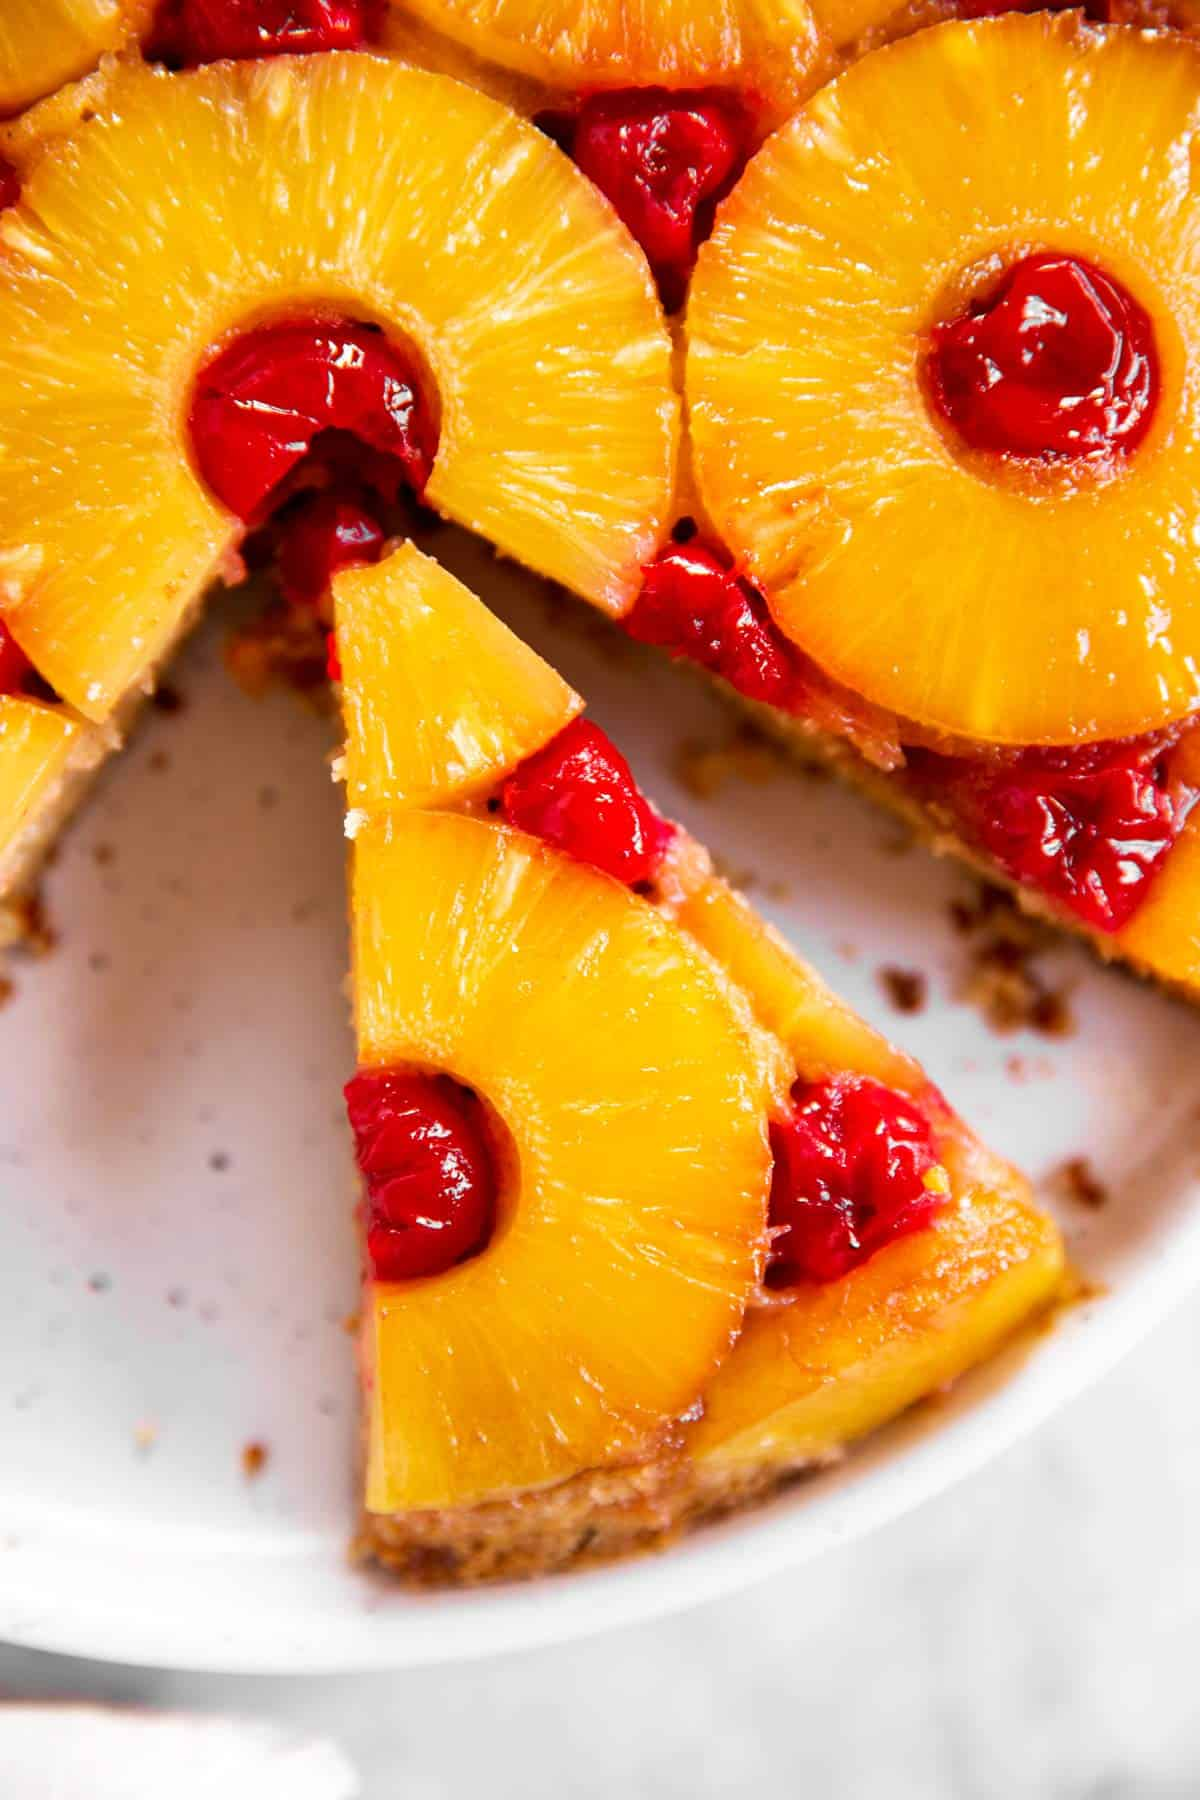 close up photo of a slice of pineapple upside down cake